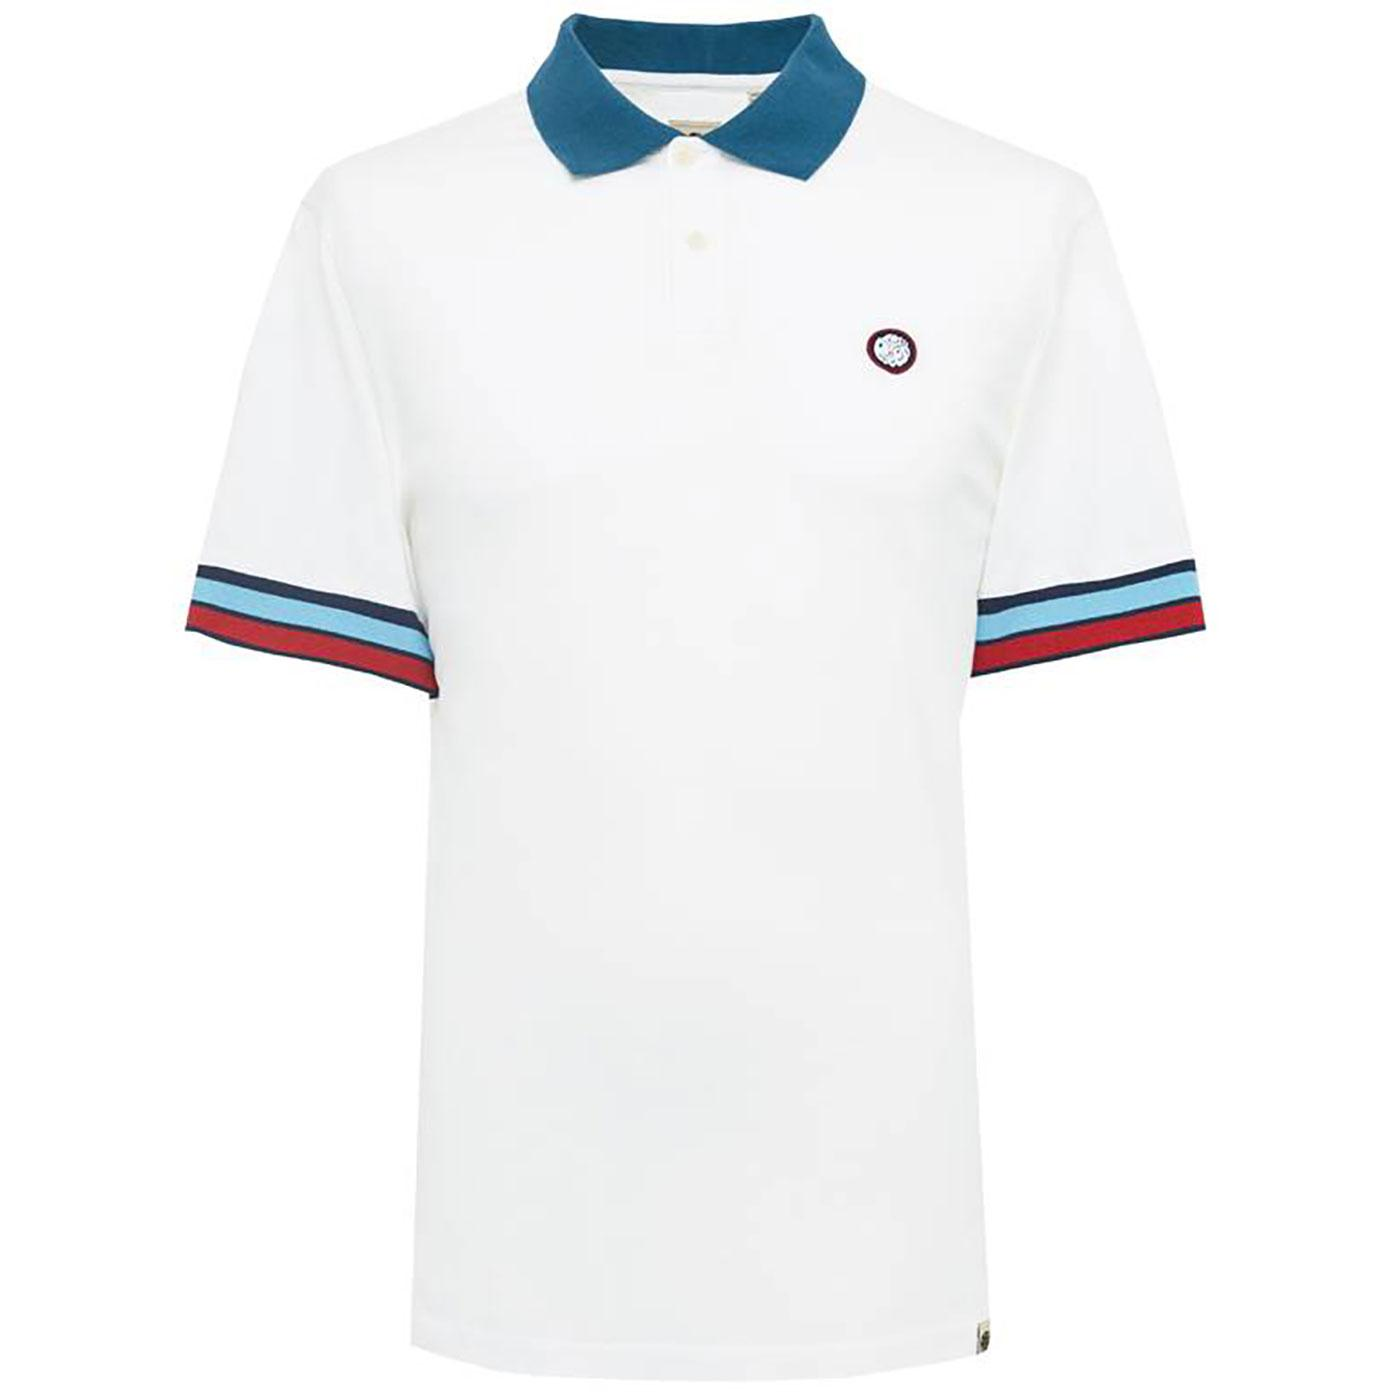 PRETTY GREEN Retro Mod Contrast Stripe Cuff Polo W